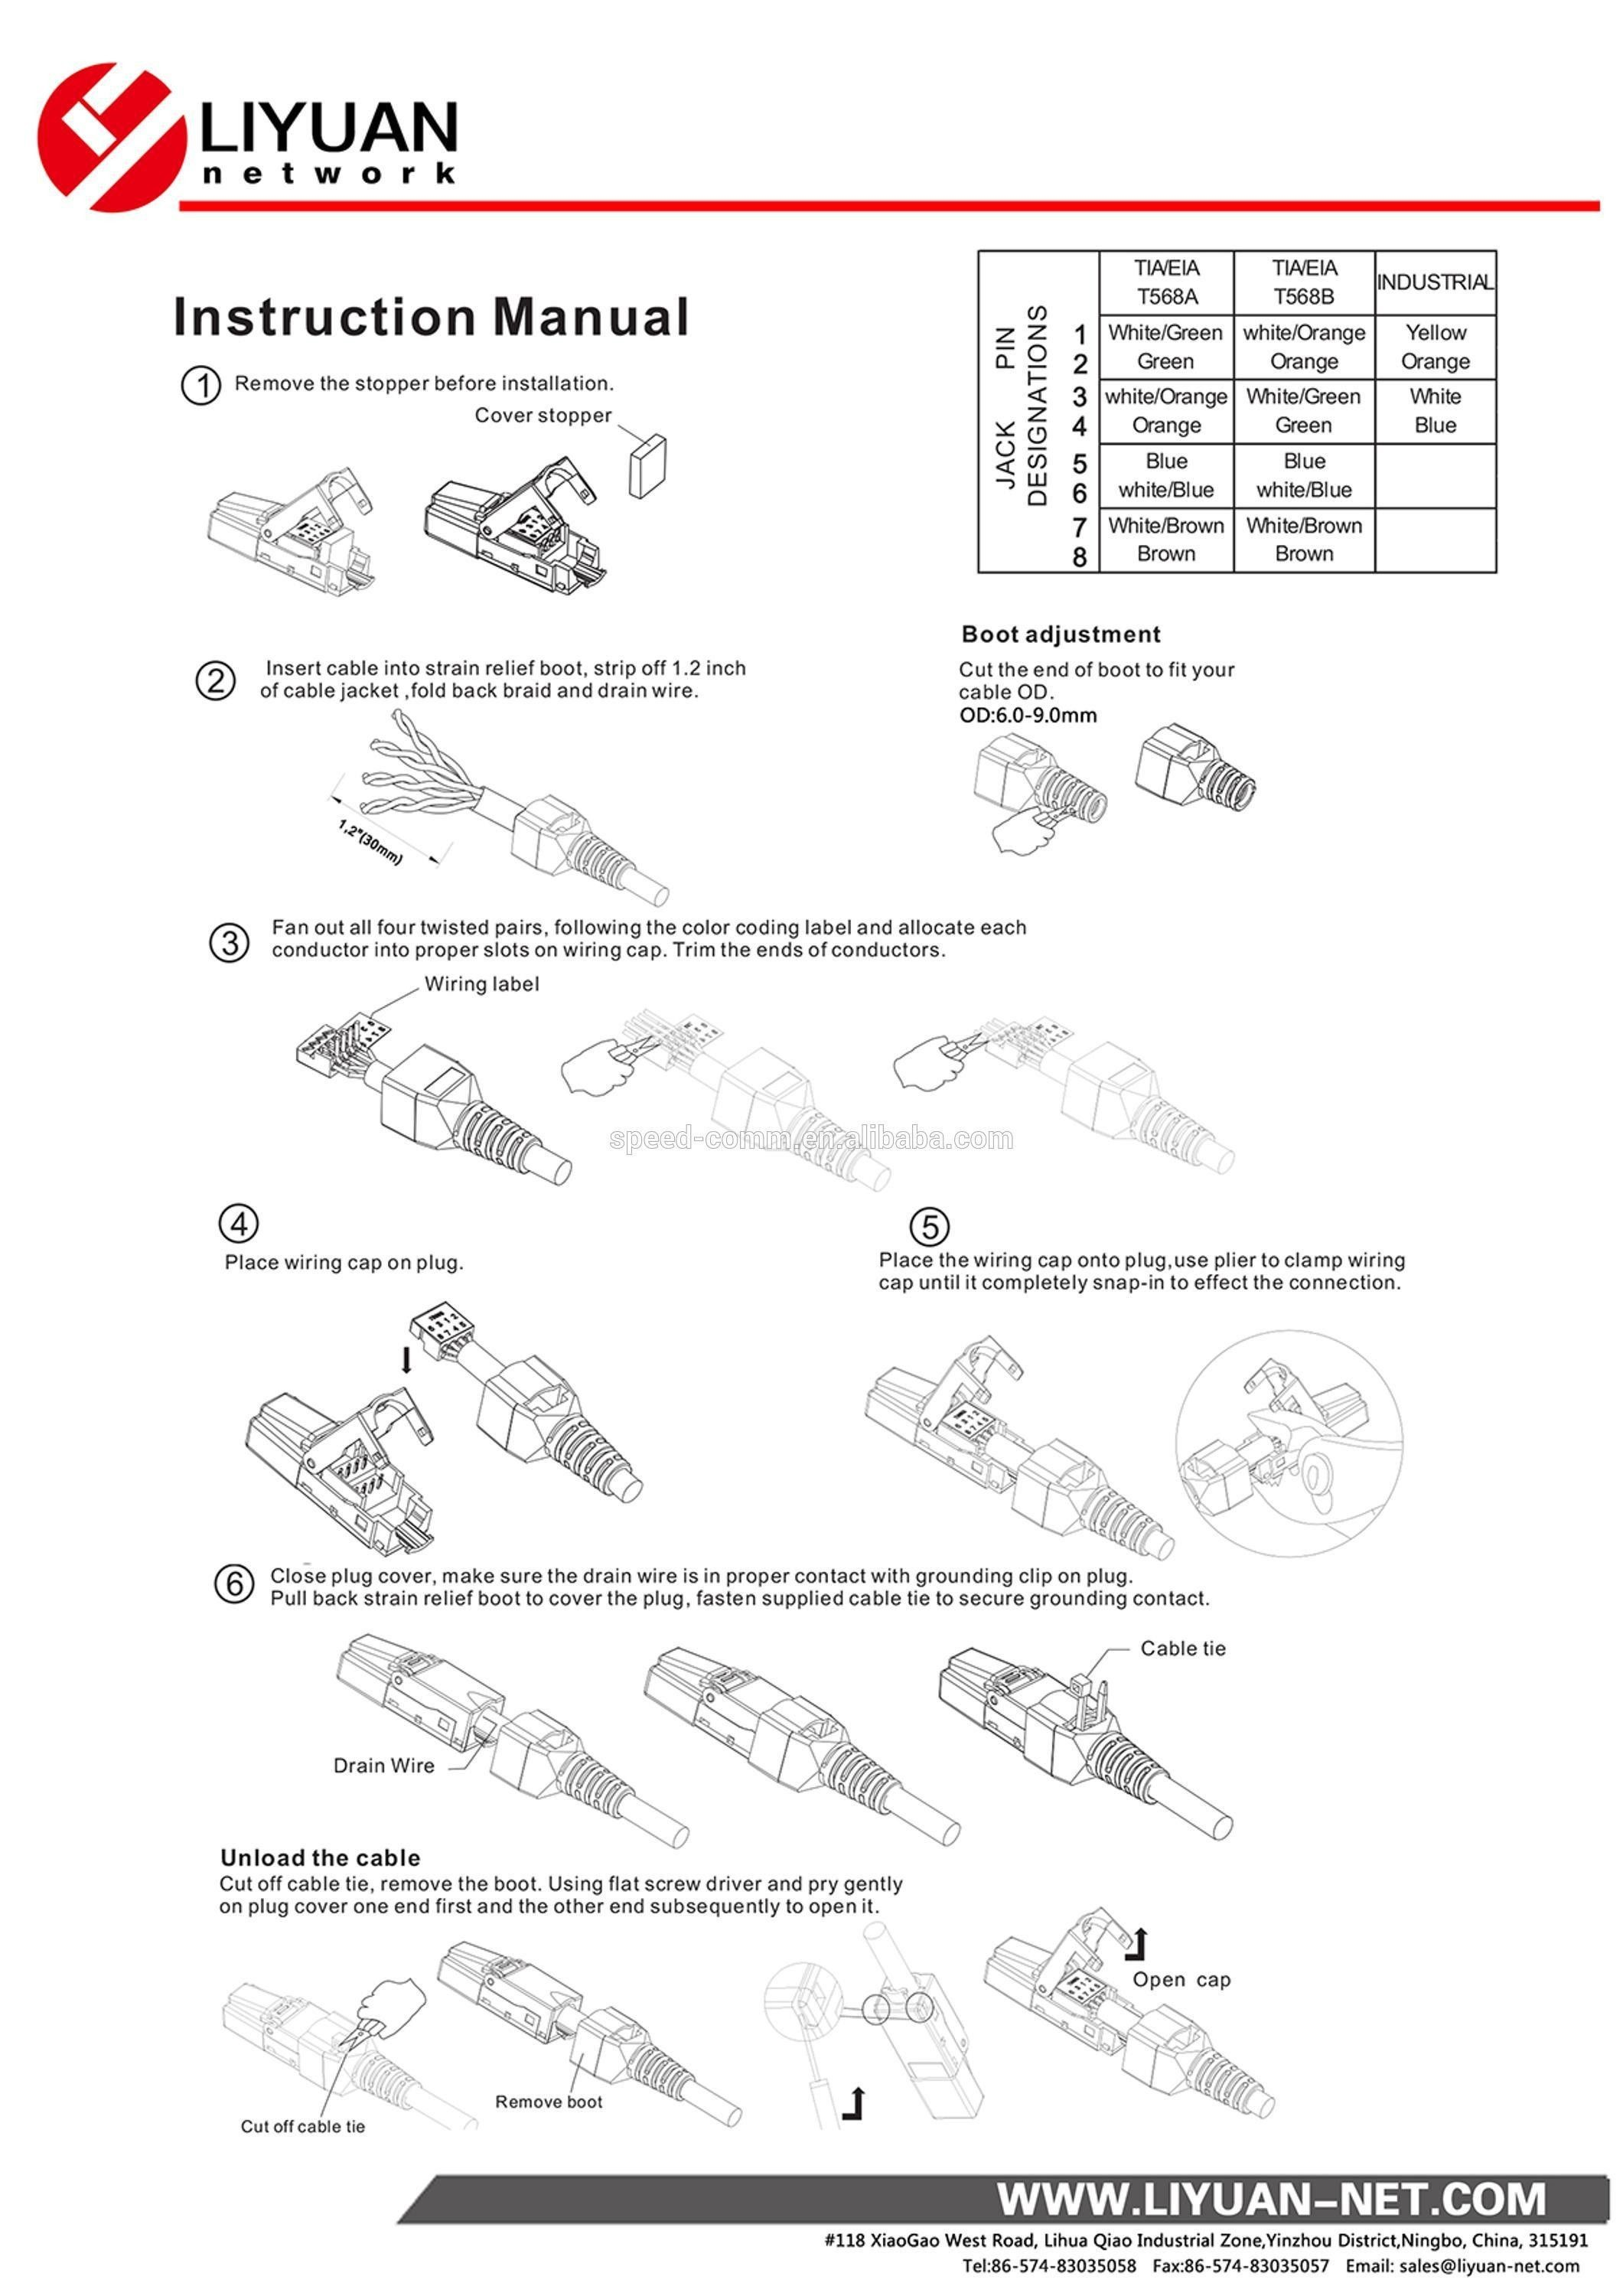 Ethernet Cable Wiring Diagram 2 Wire Ethernet Diagram Wiring Diagrams Of Ethernet Cable Wiring Diagram